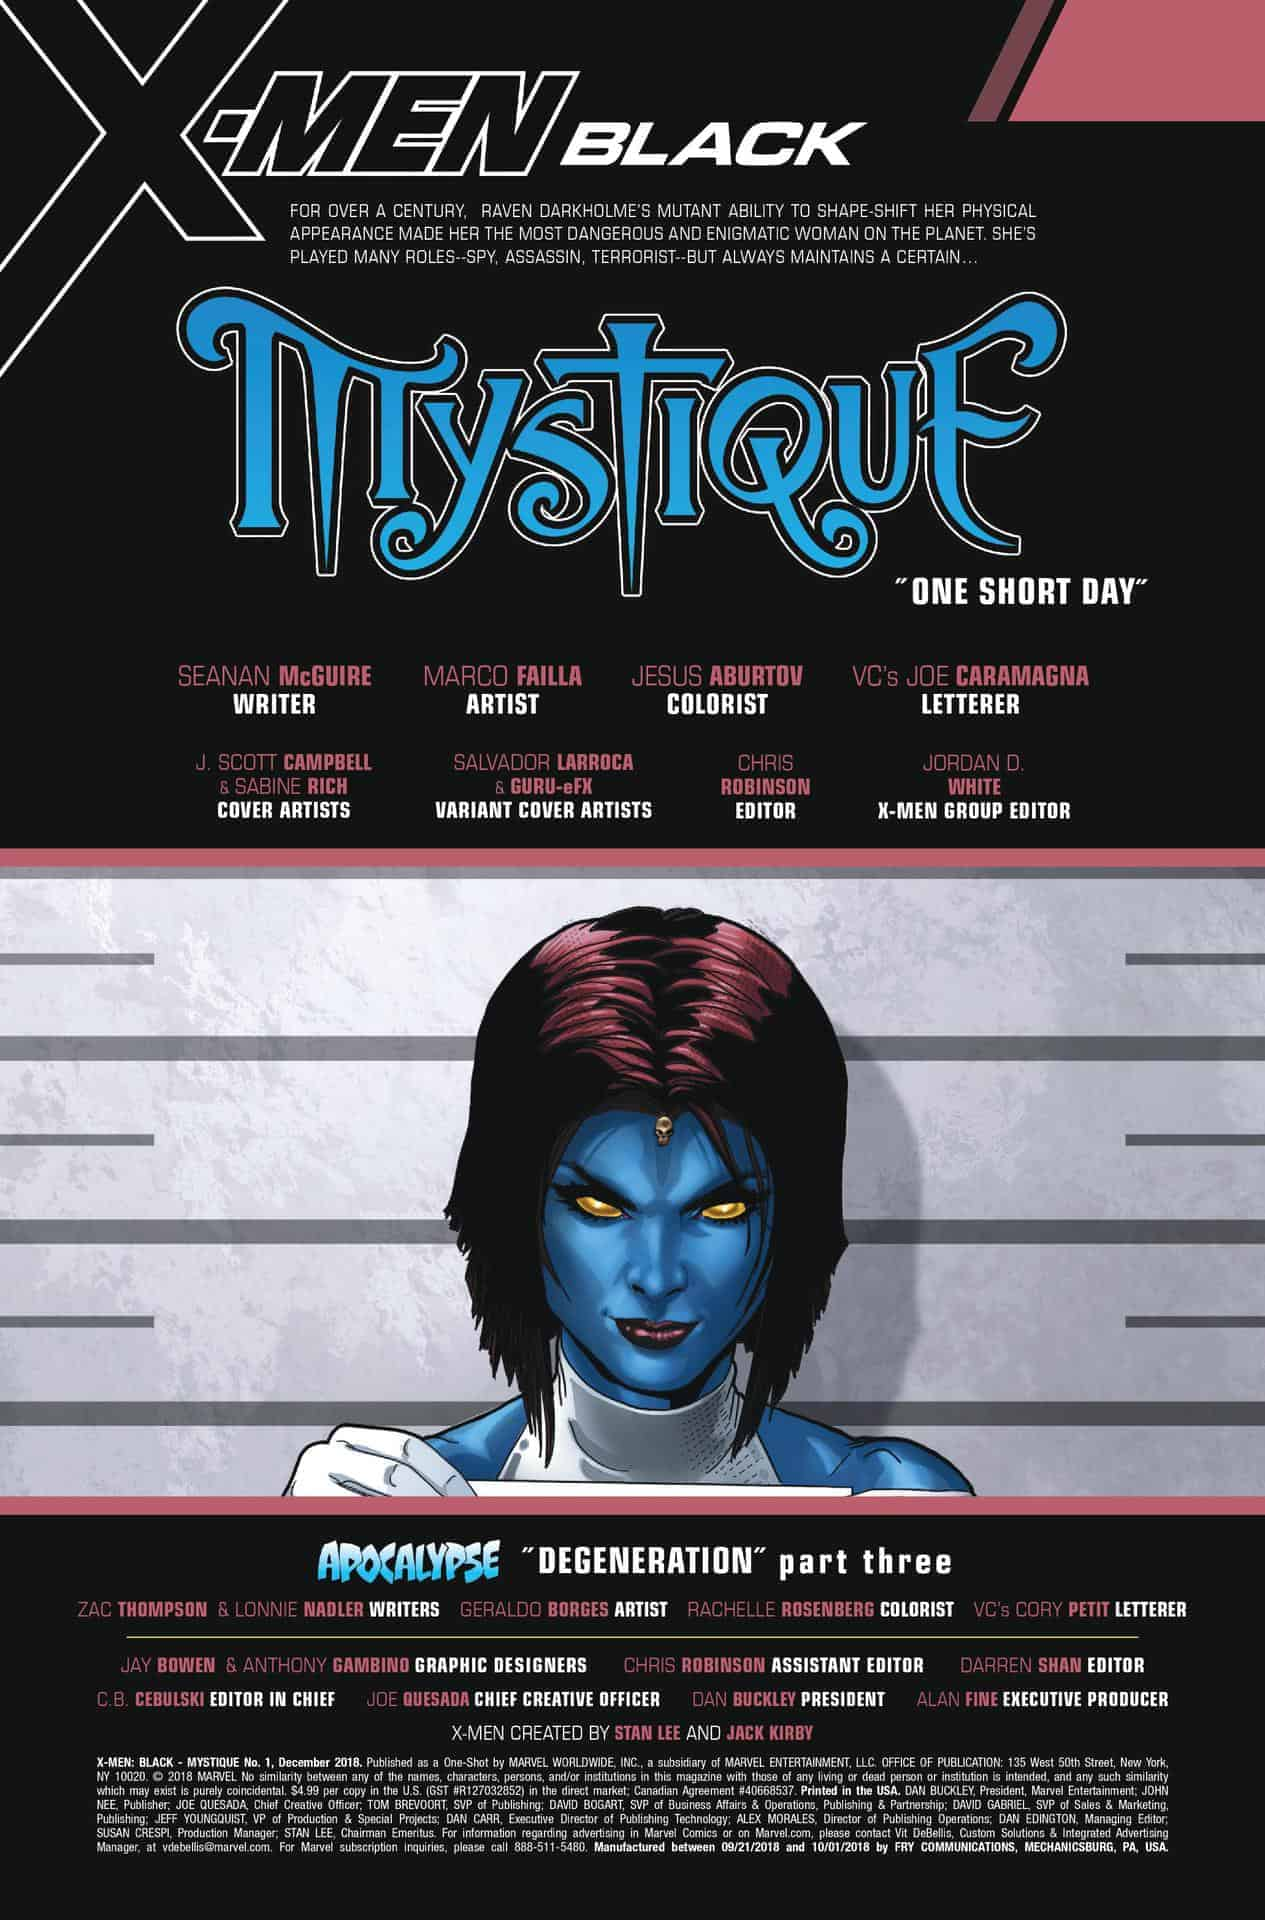 x-men: black - mystique #1